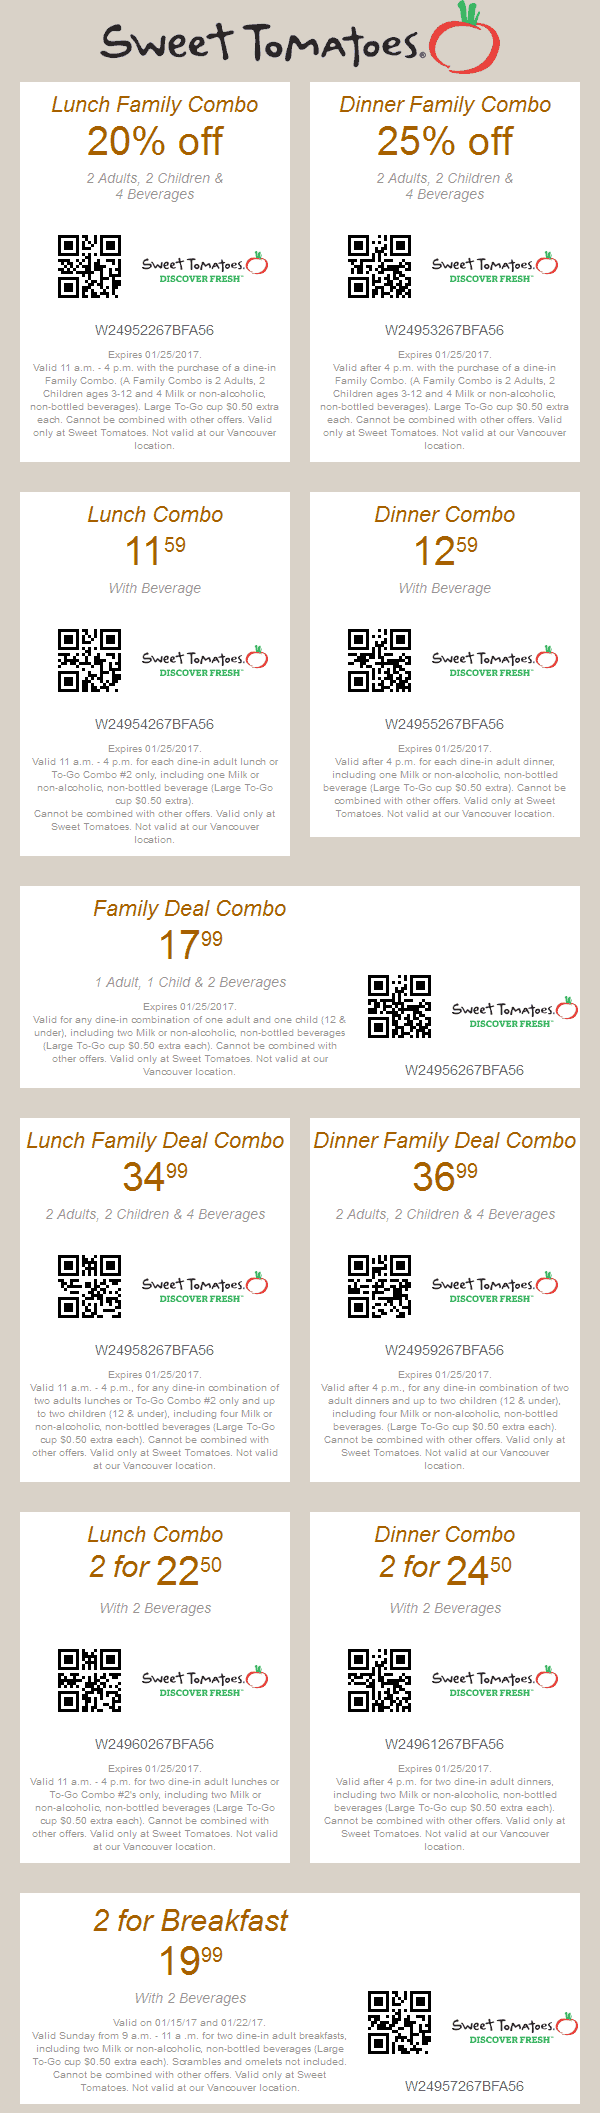 SweetTomatoes.com Promo Coupon 20% off lunch, 25% off dinner at Sweet Tomatoes & Souplantation